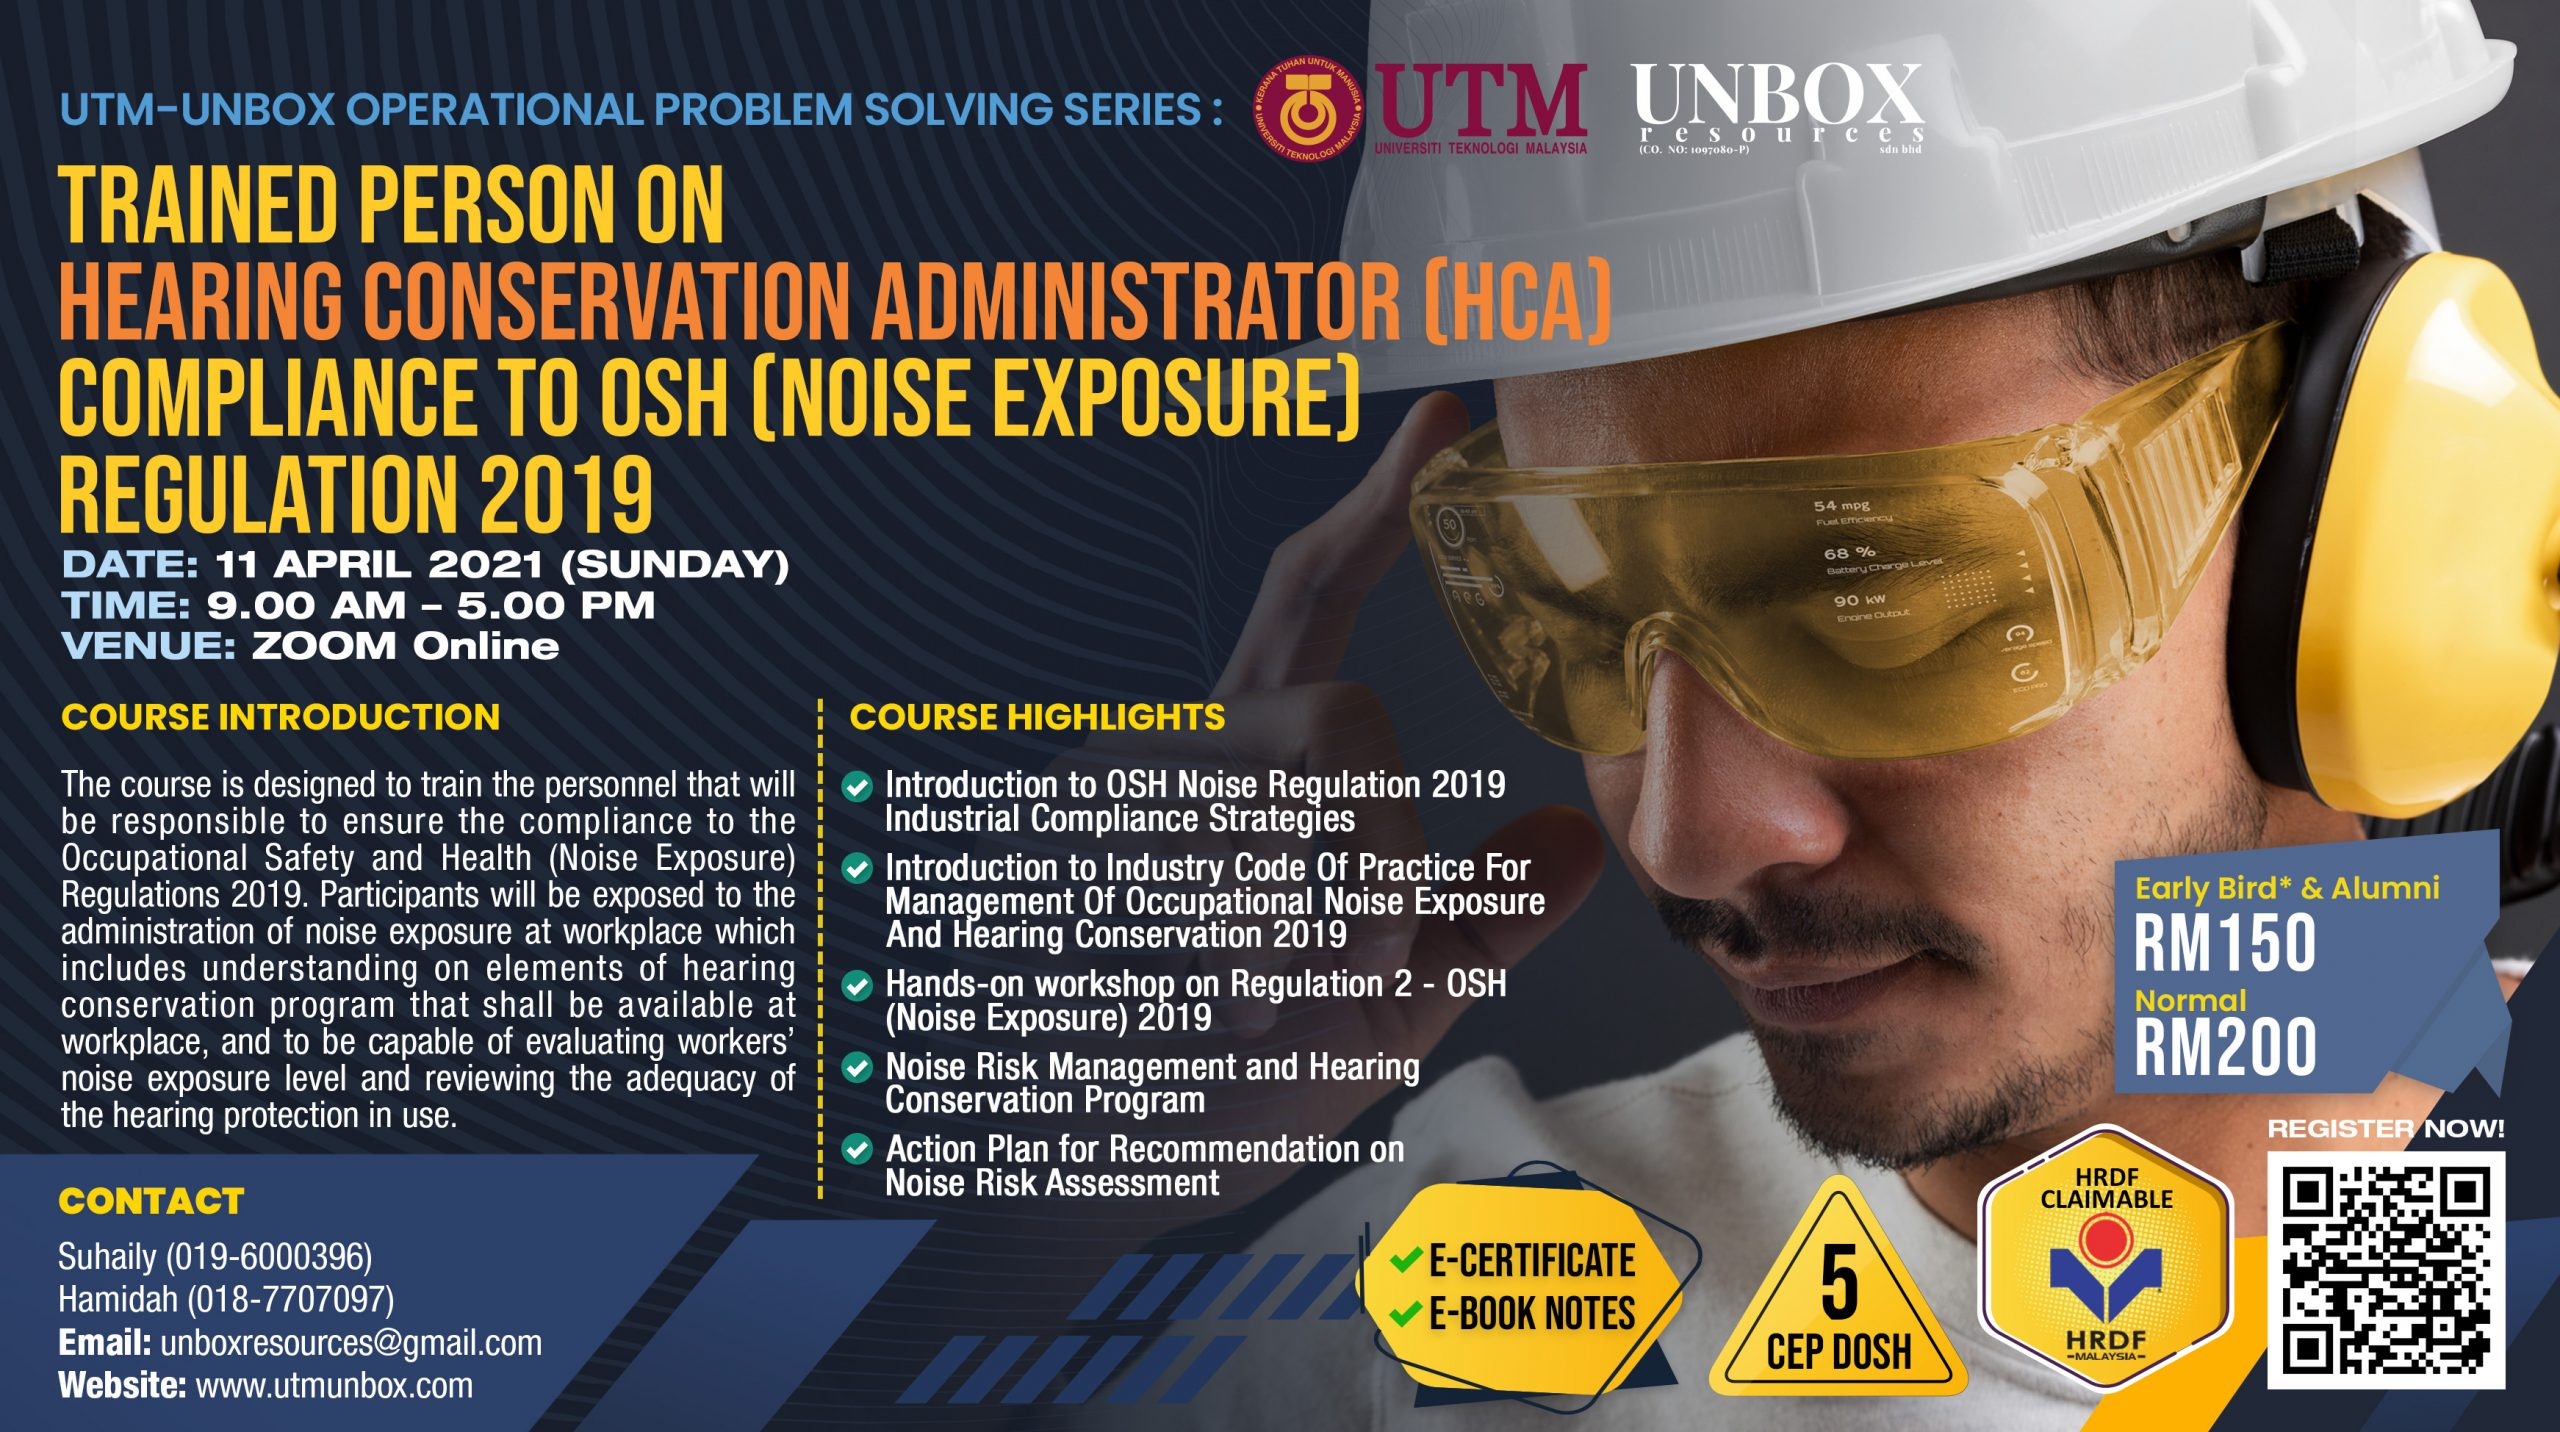 TRAINED PERSON ON HEARING CONSERVATION ADMINISTRATOR COMPLIANCE TO OCCUPATIONAL SAFETY & HEALTH (NOISE EXPOSURE) REGULATION 2019